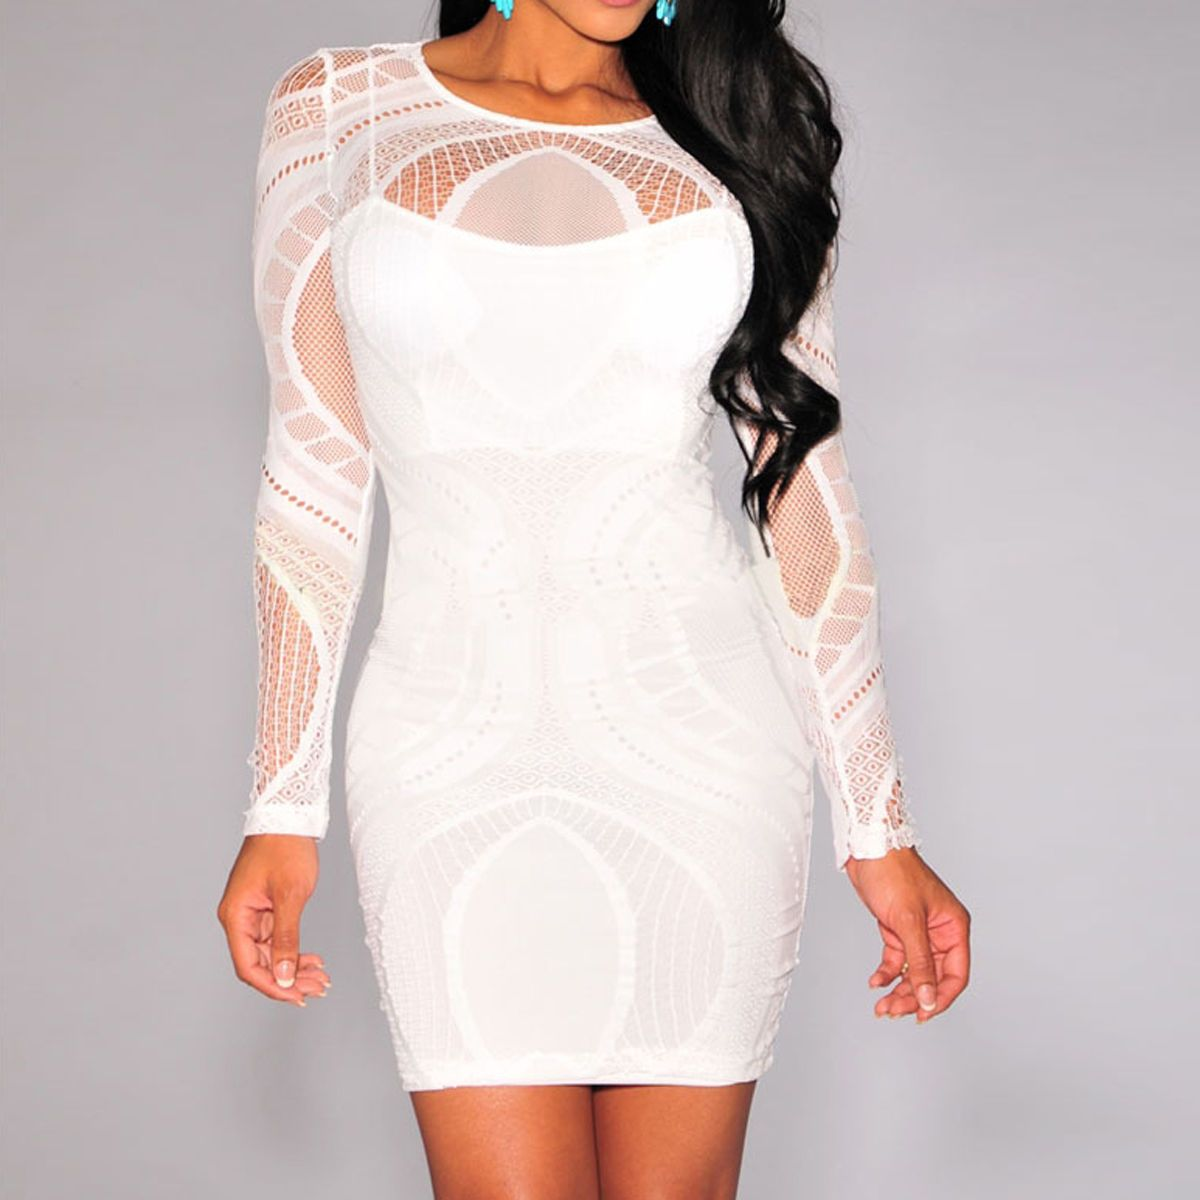 0b8f2f1a842 Women Sexy Bandage Bodycon Summer Evening Cocktail Party Long Sleeve Mini  Dress  Womensfallfashion